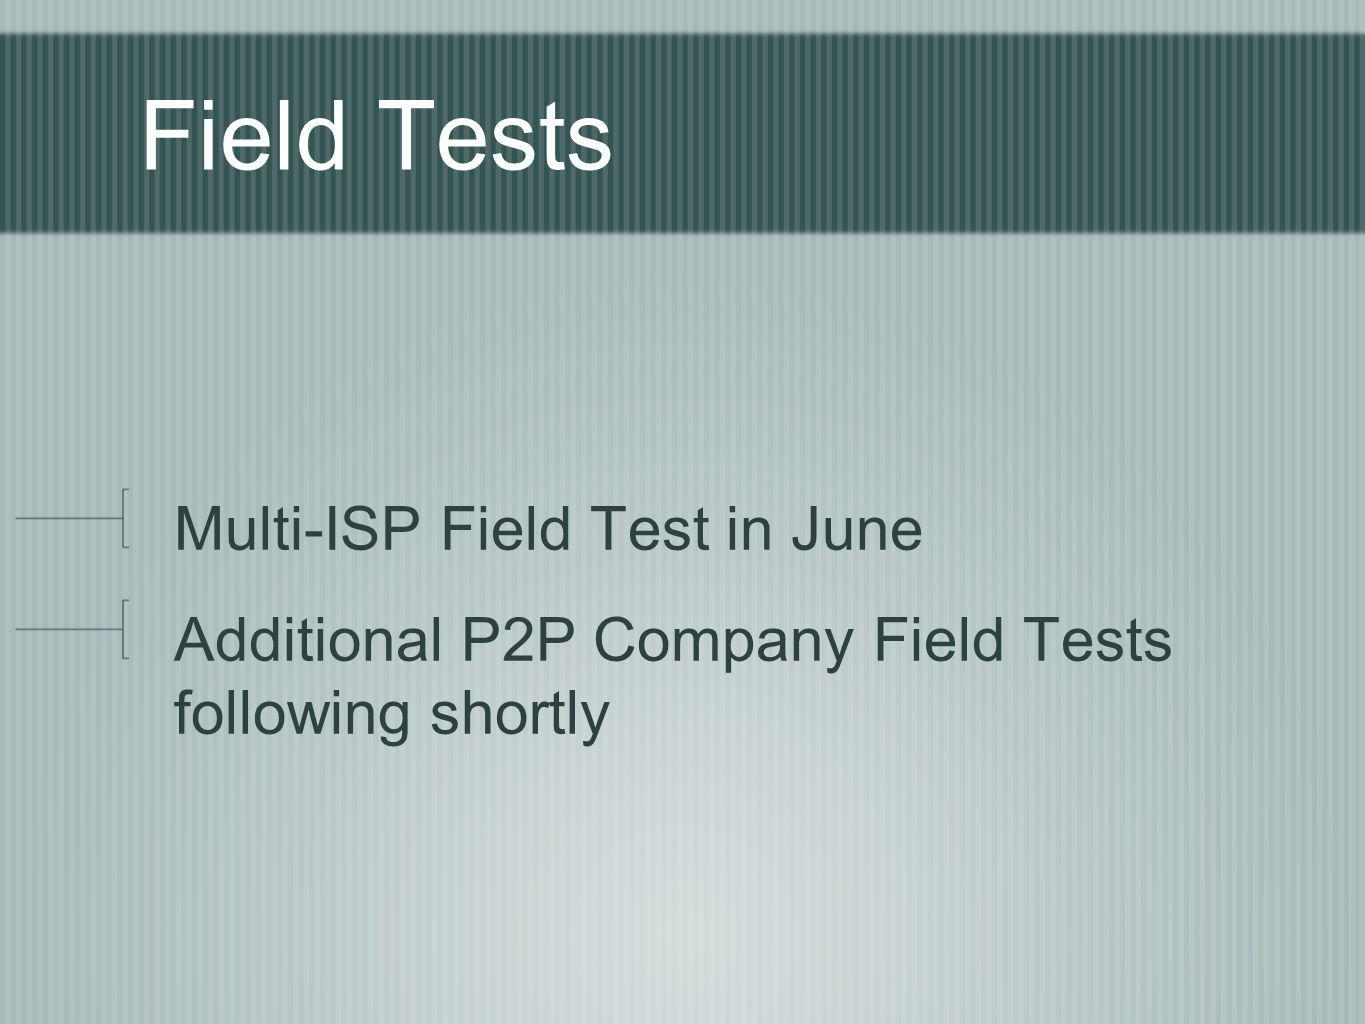 Field Tests Multi-ISP Field Test in June